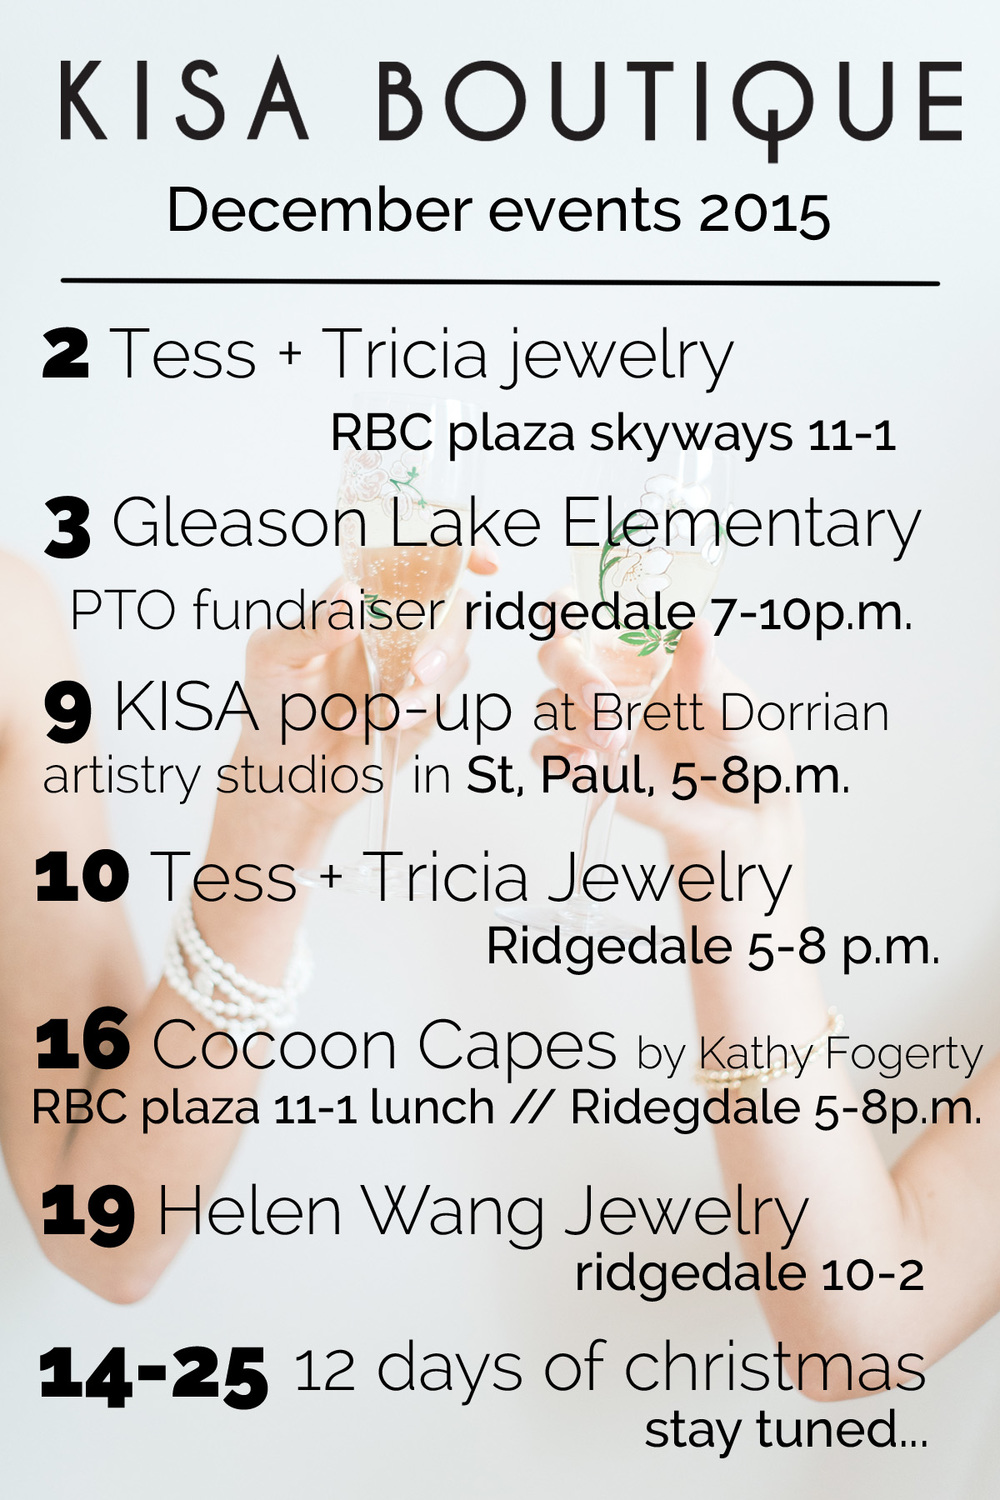 Kisa boutique holiday event guide rbcplazadowntownminneapolis ridegdale